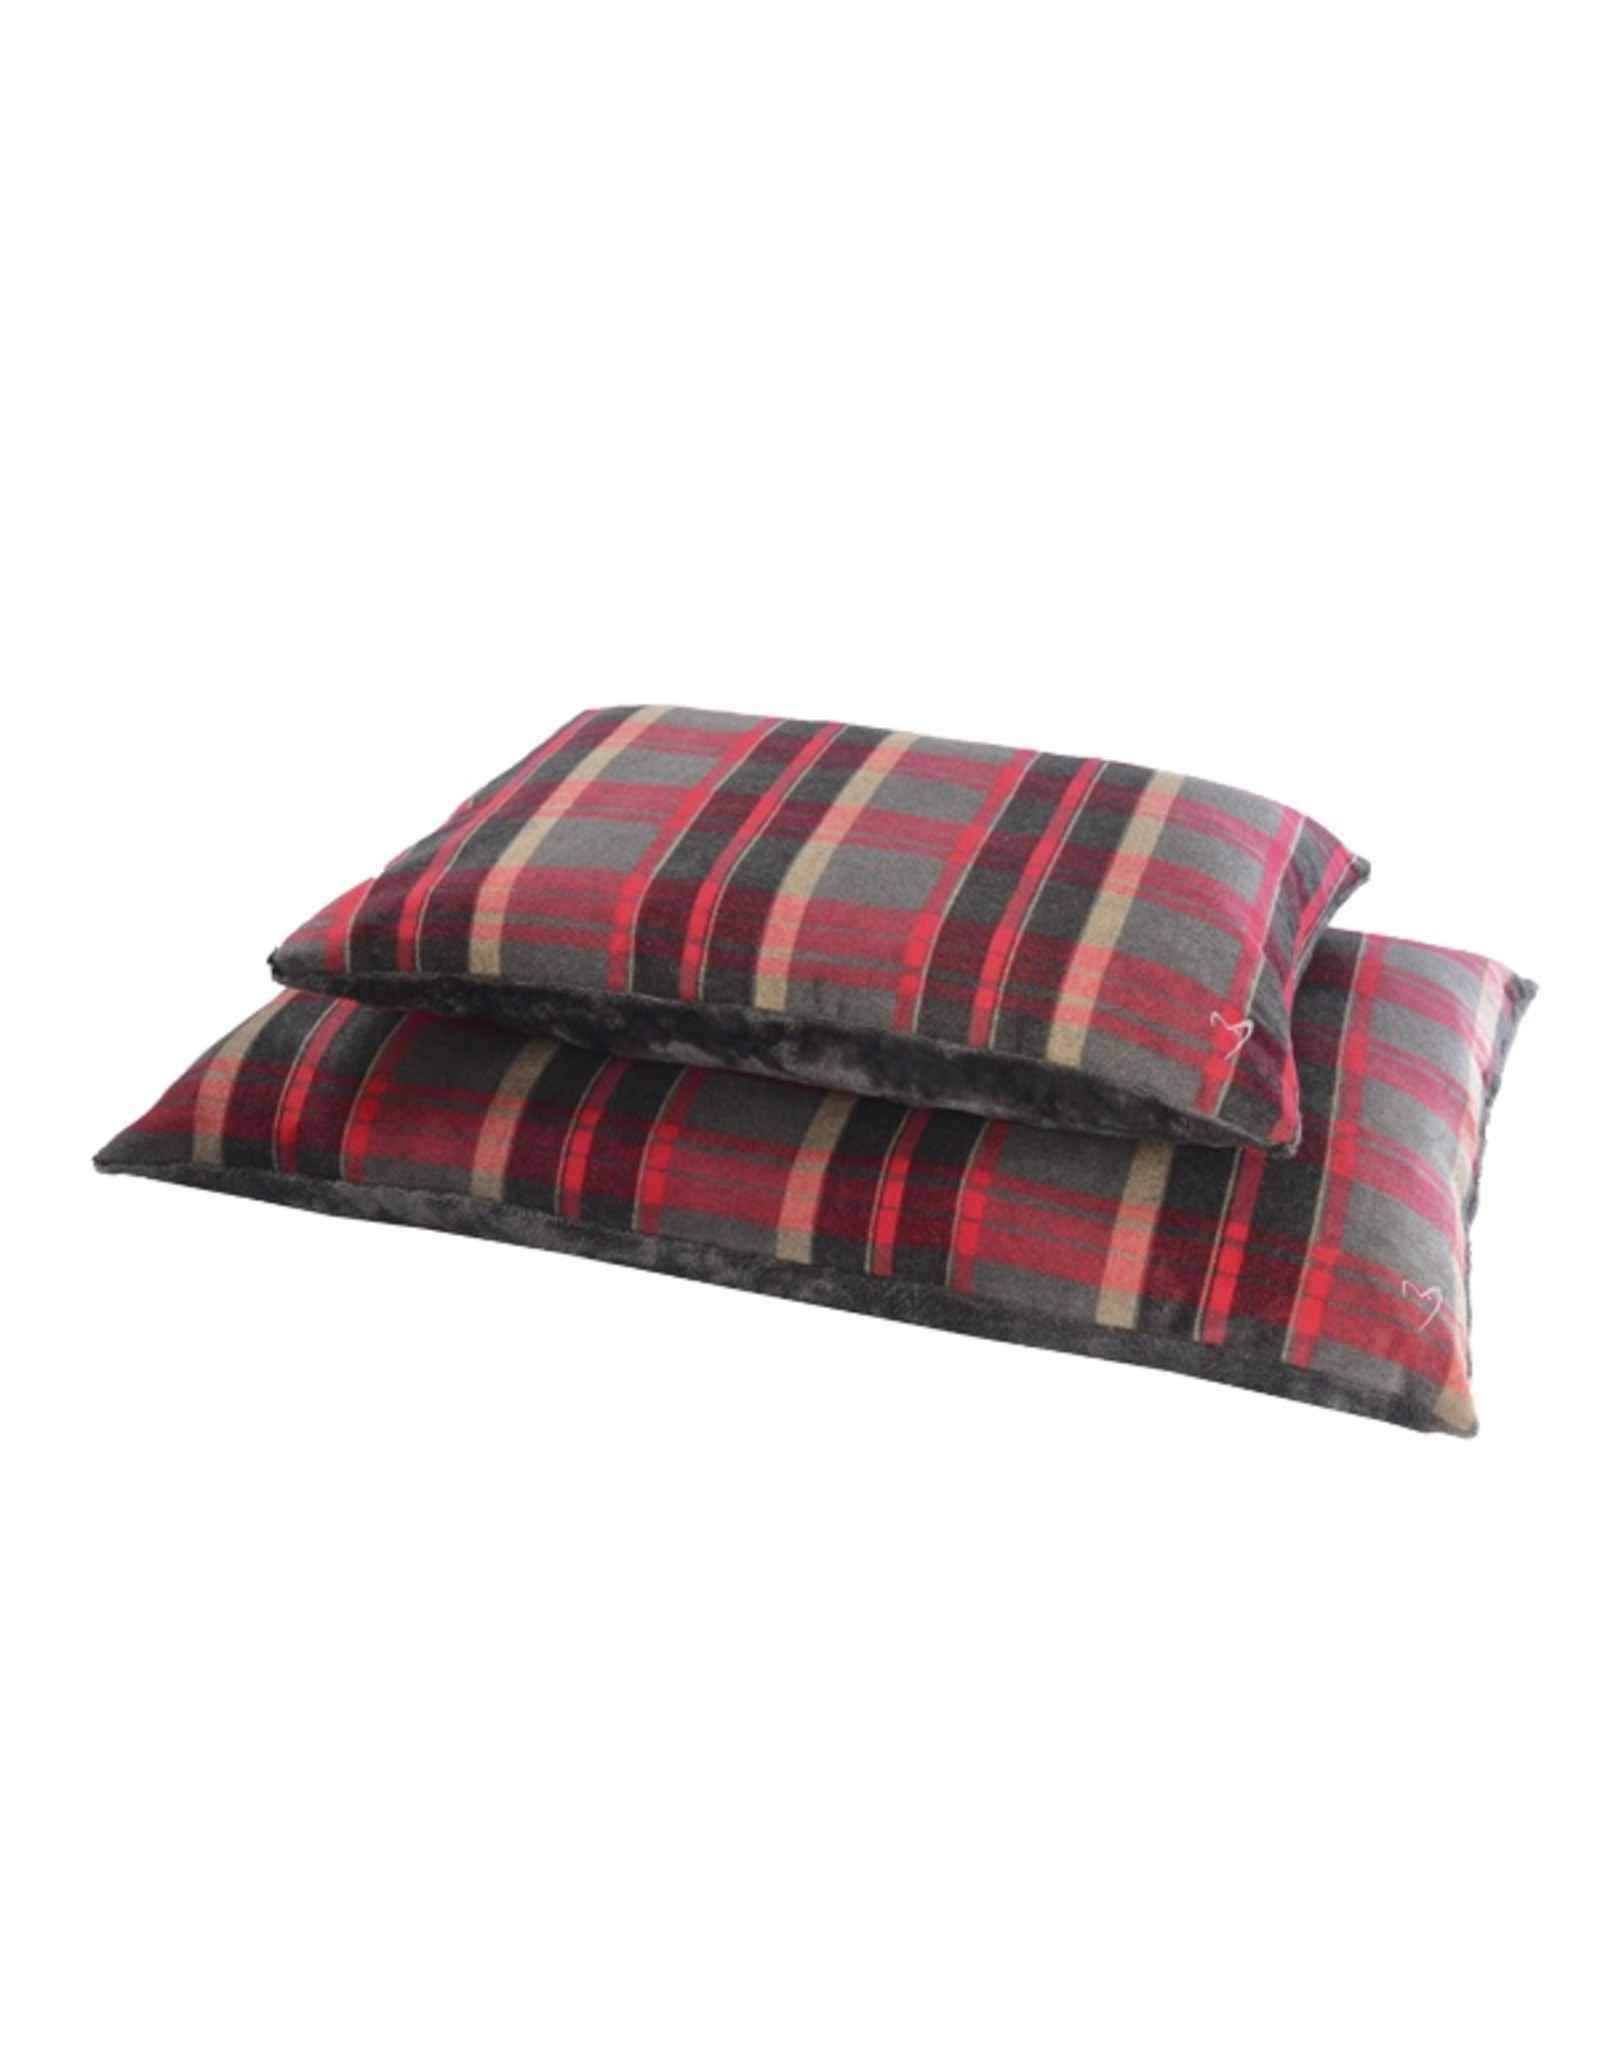 Gor Pets Camden Comfy Cushion Dog Bed, Large 76x117cm